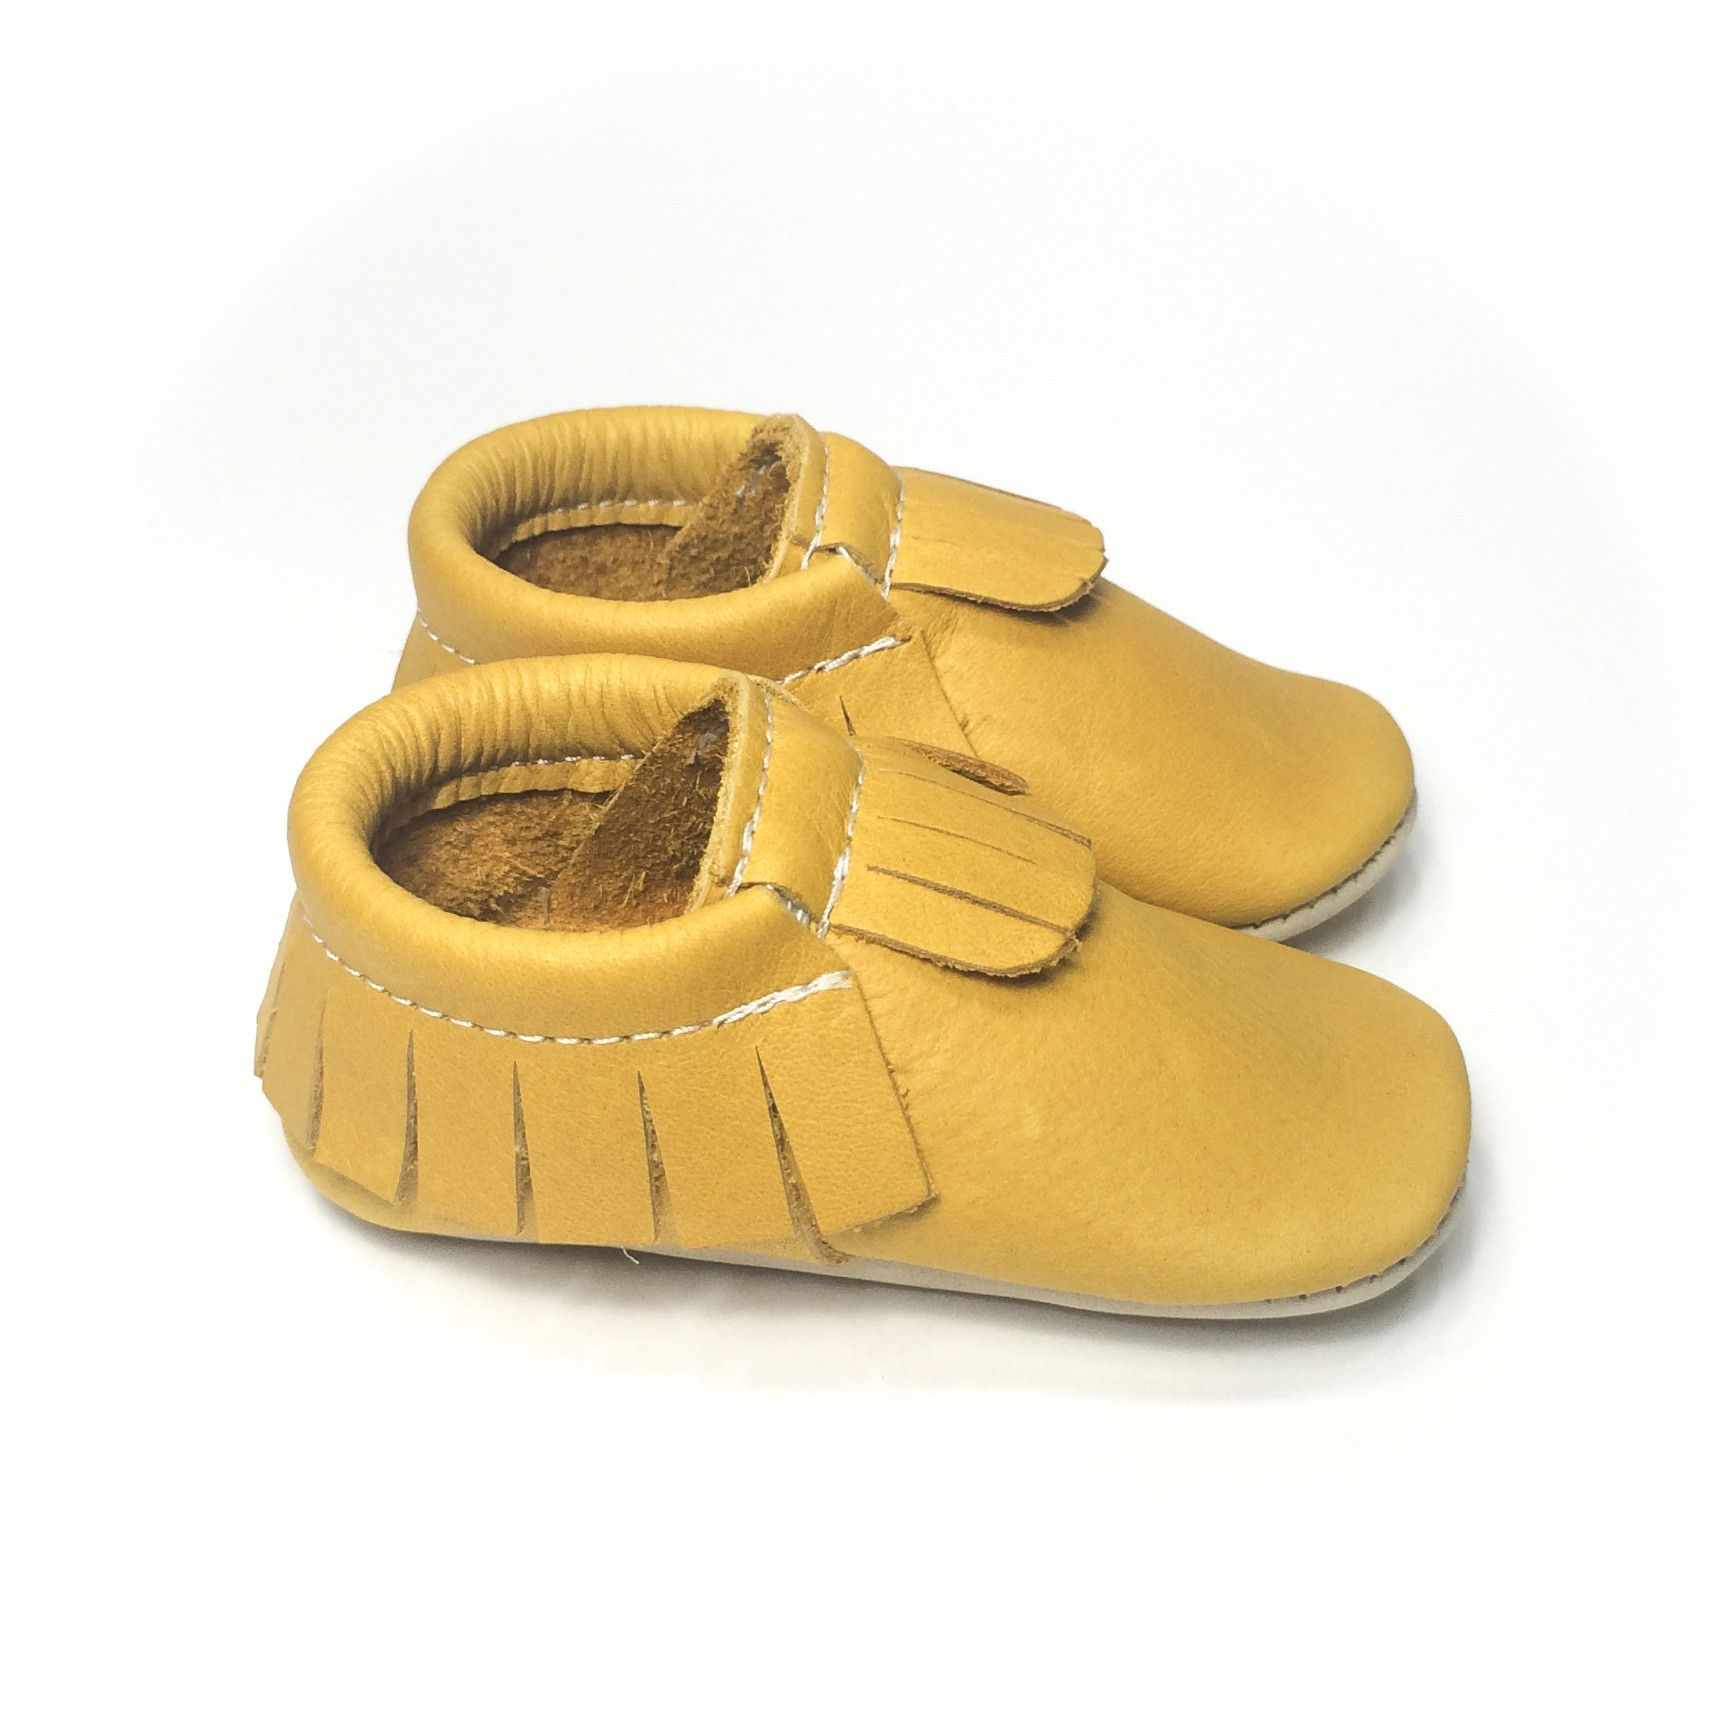 Lion moccasins - Minimoc - made in Canada